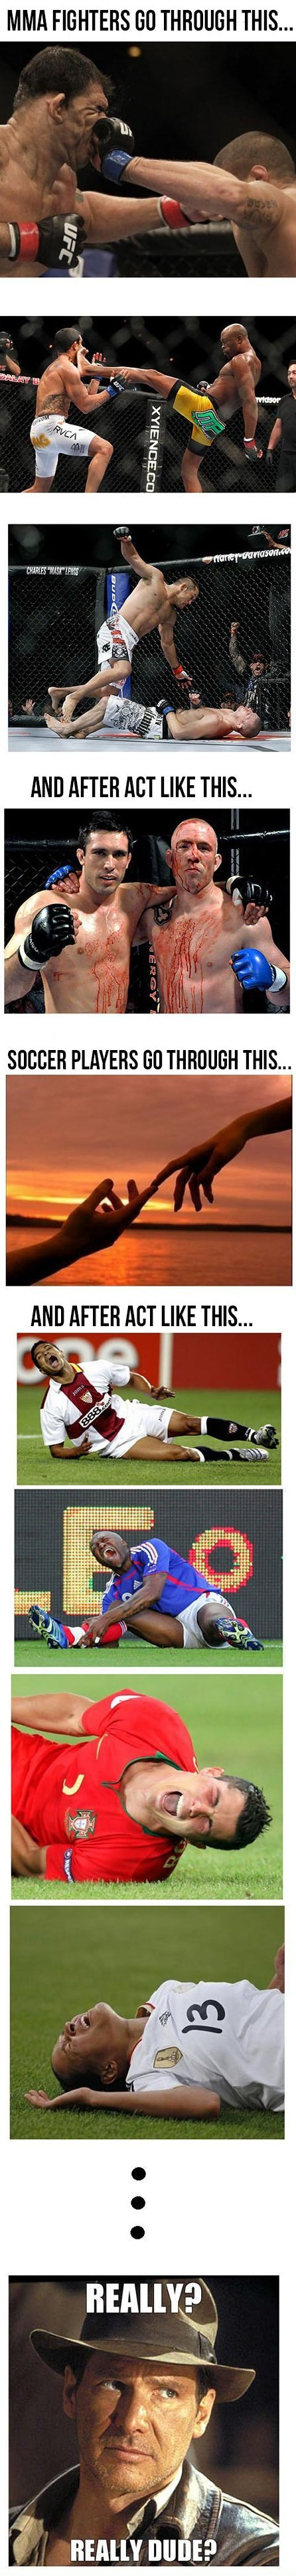 Fighters vs. Soccer Players